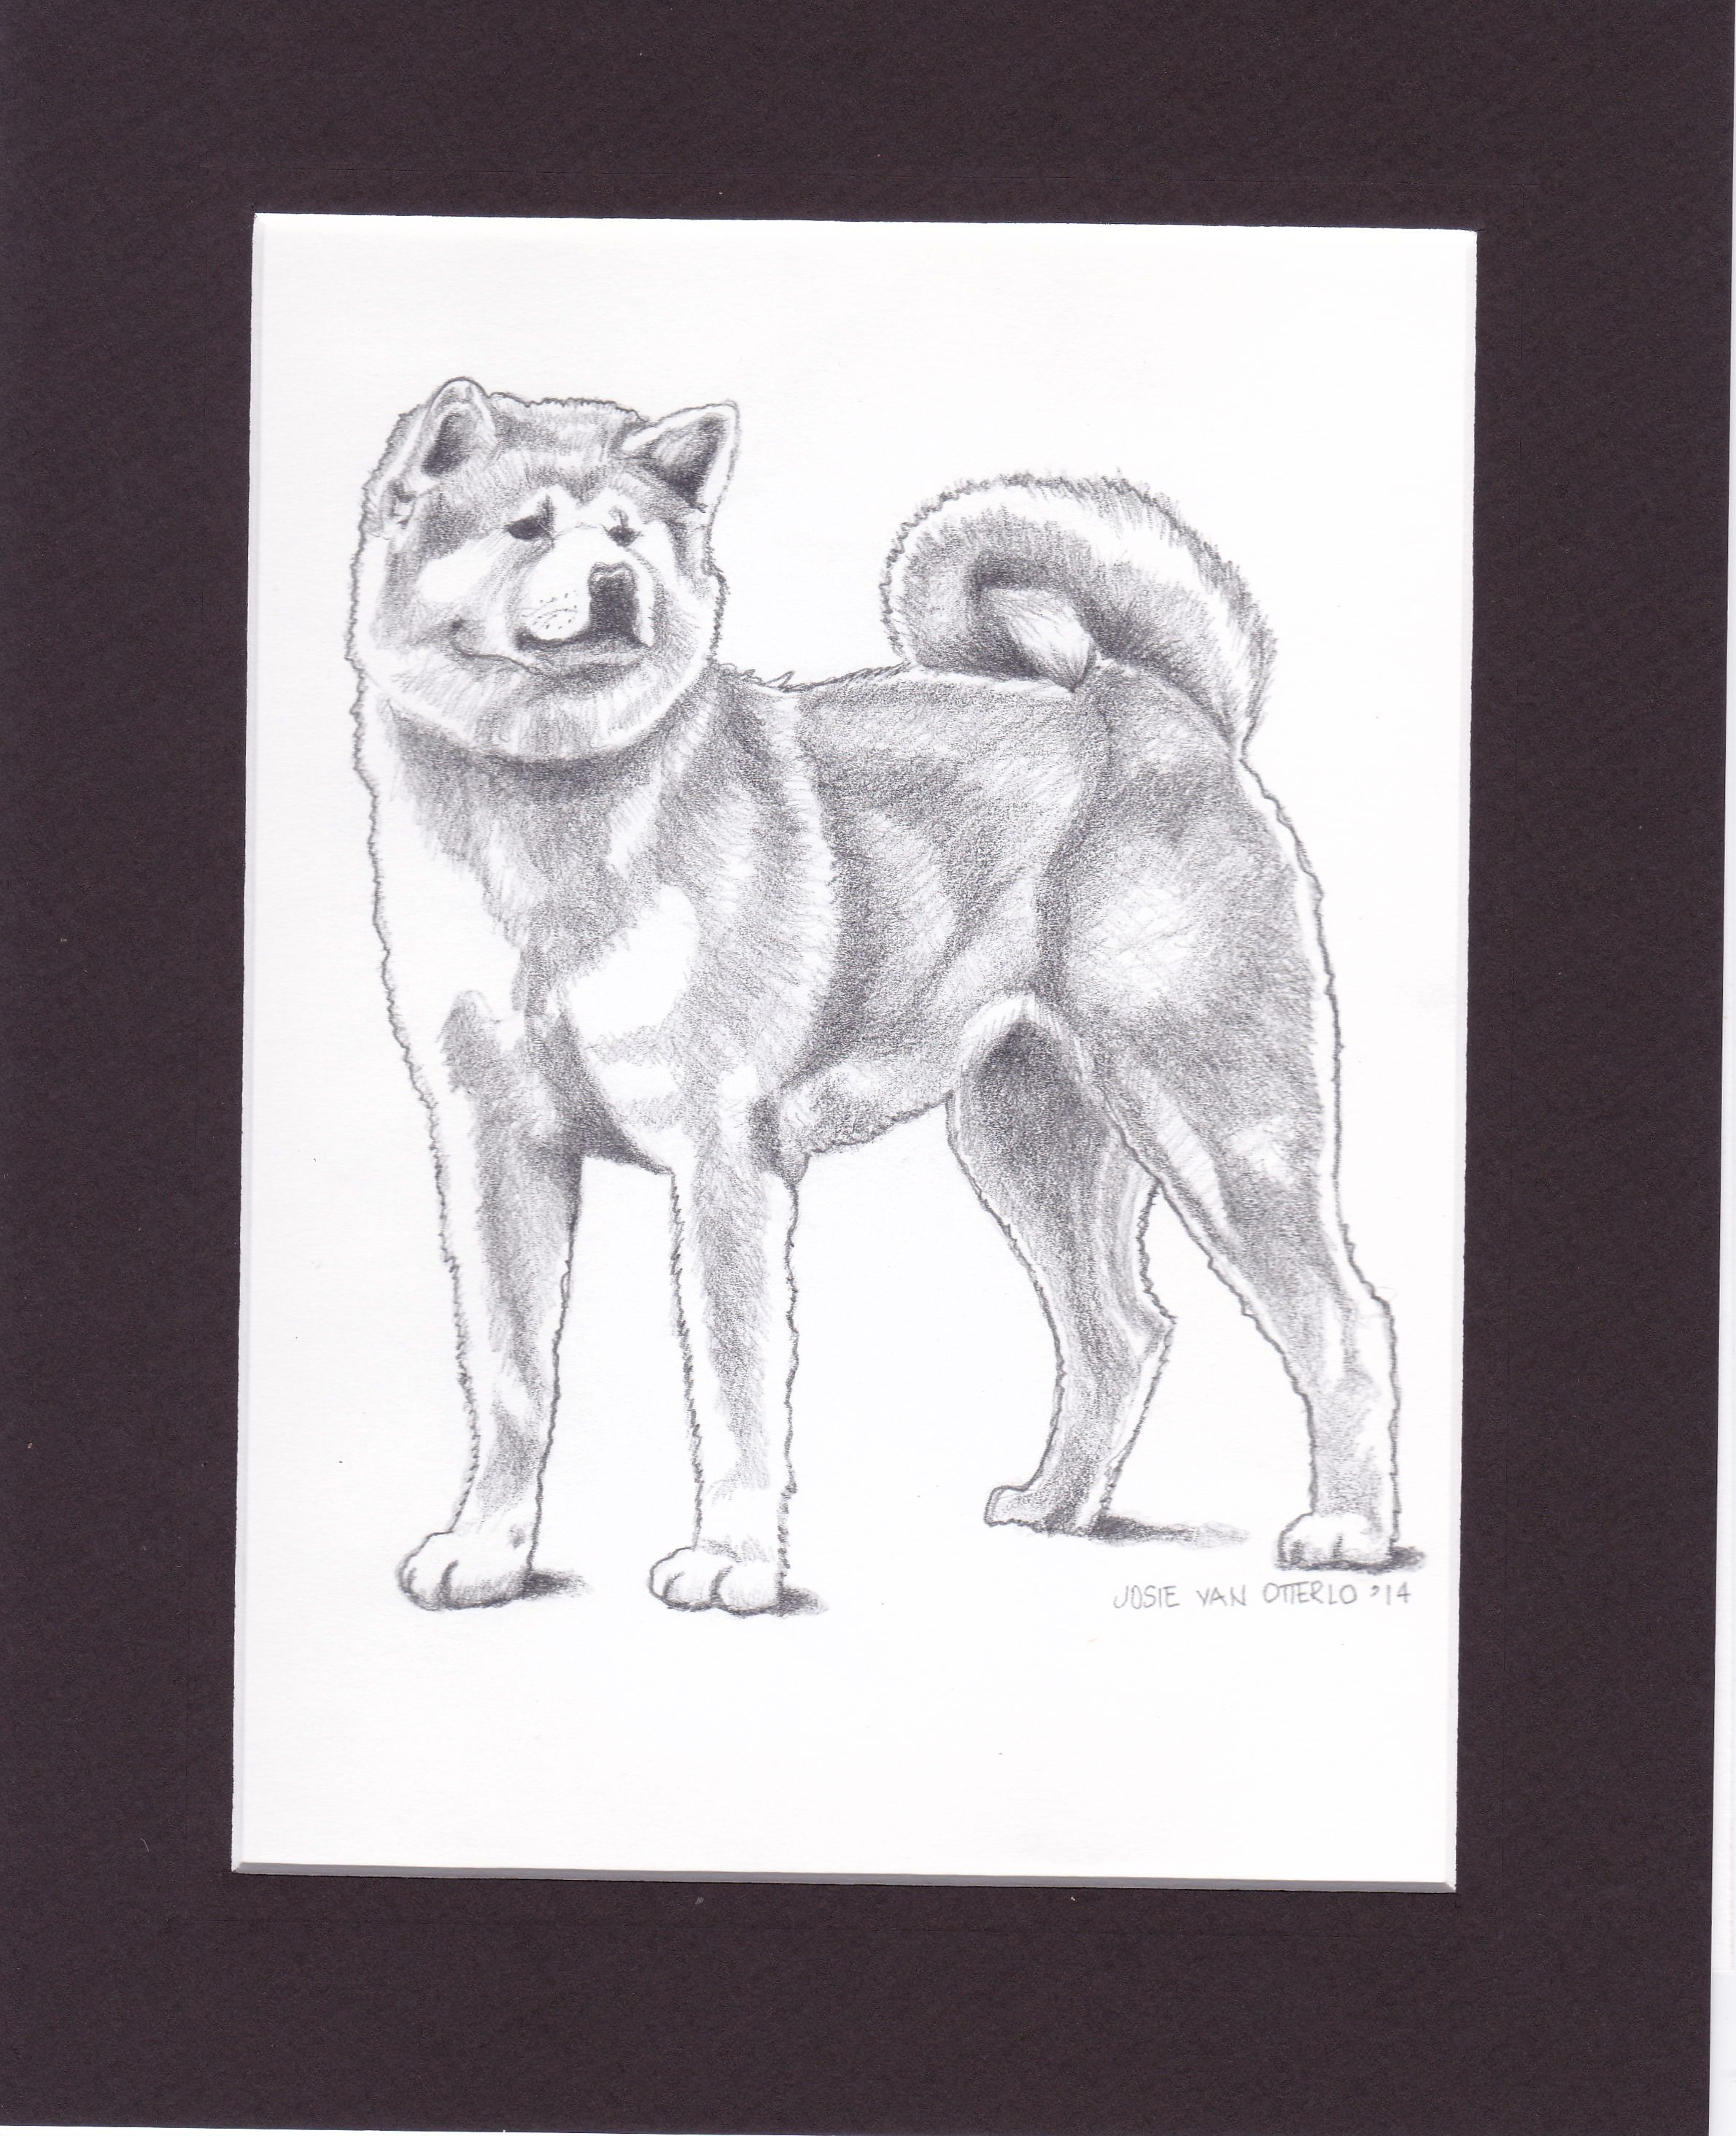 This is a pencil drawing i did of a red akita inu that i will donate this is a pencil drawing i did of a red akita inu that i will donate nvjuhfo Choice Image